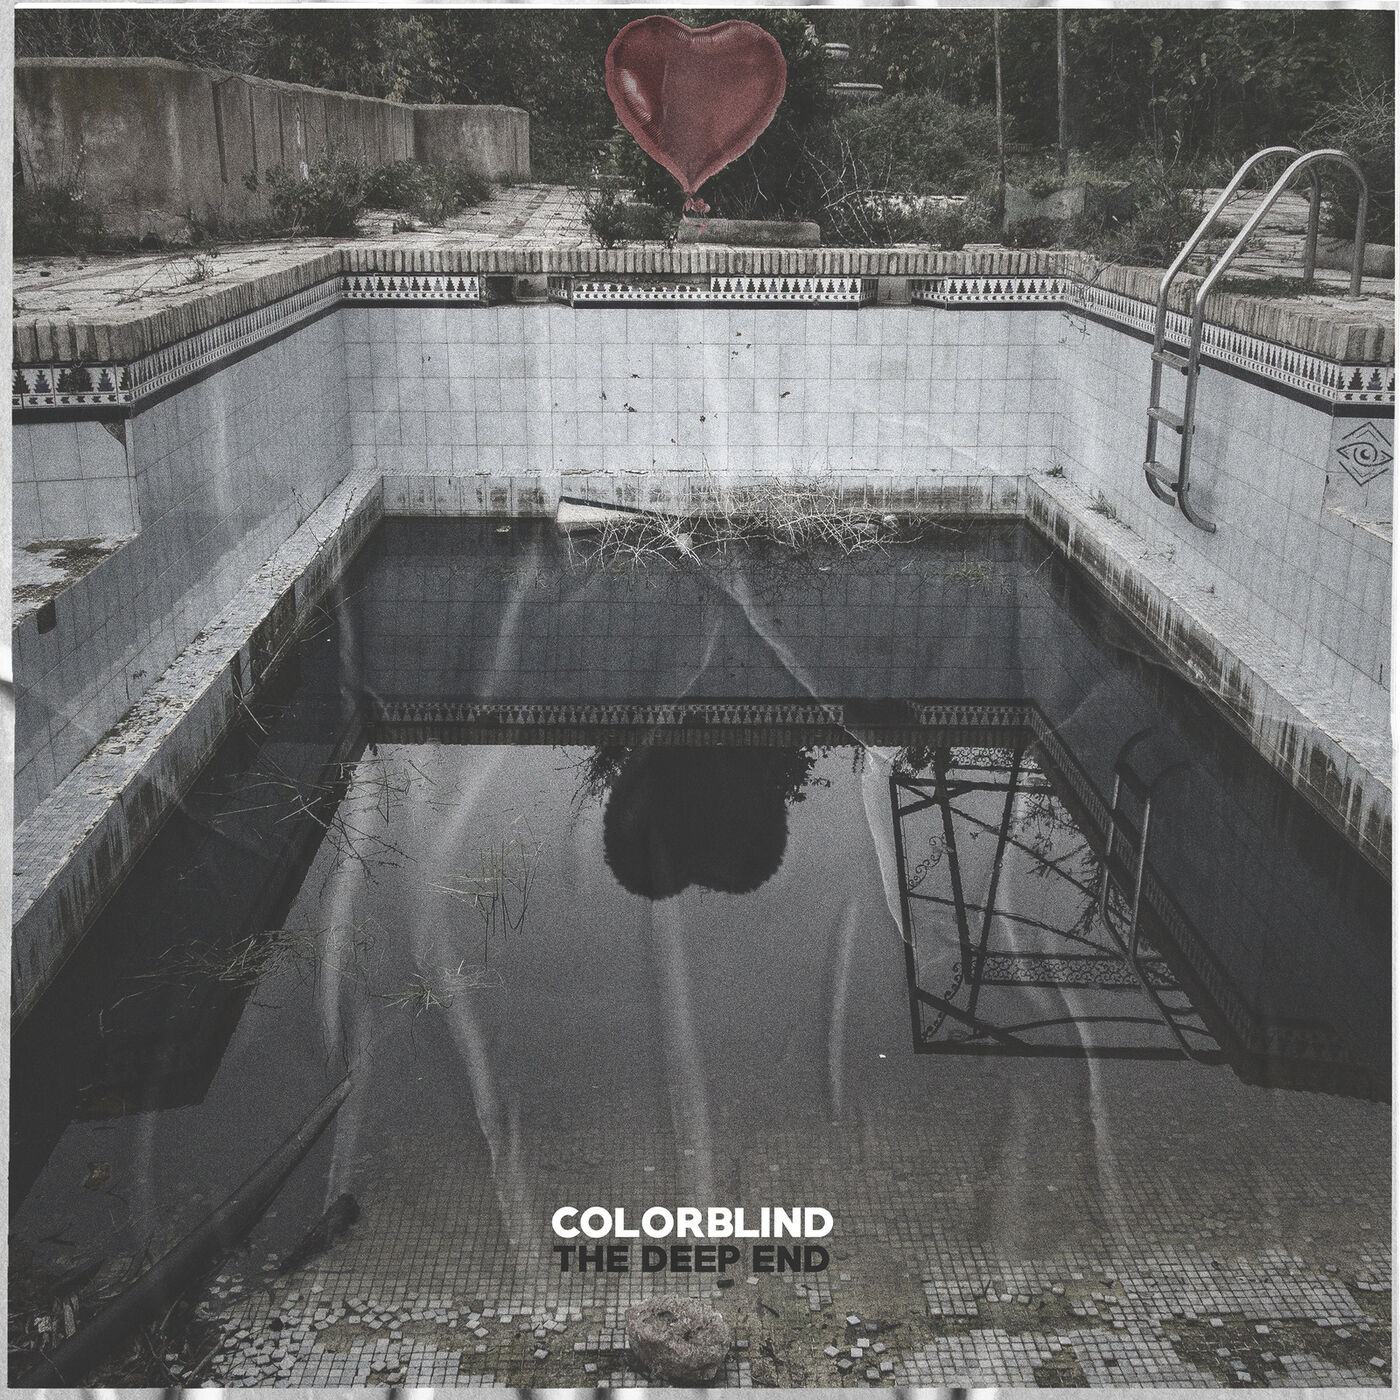 Colorblind - The Deep End [single] (2020)